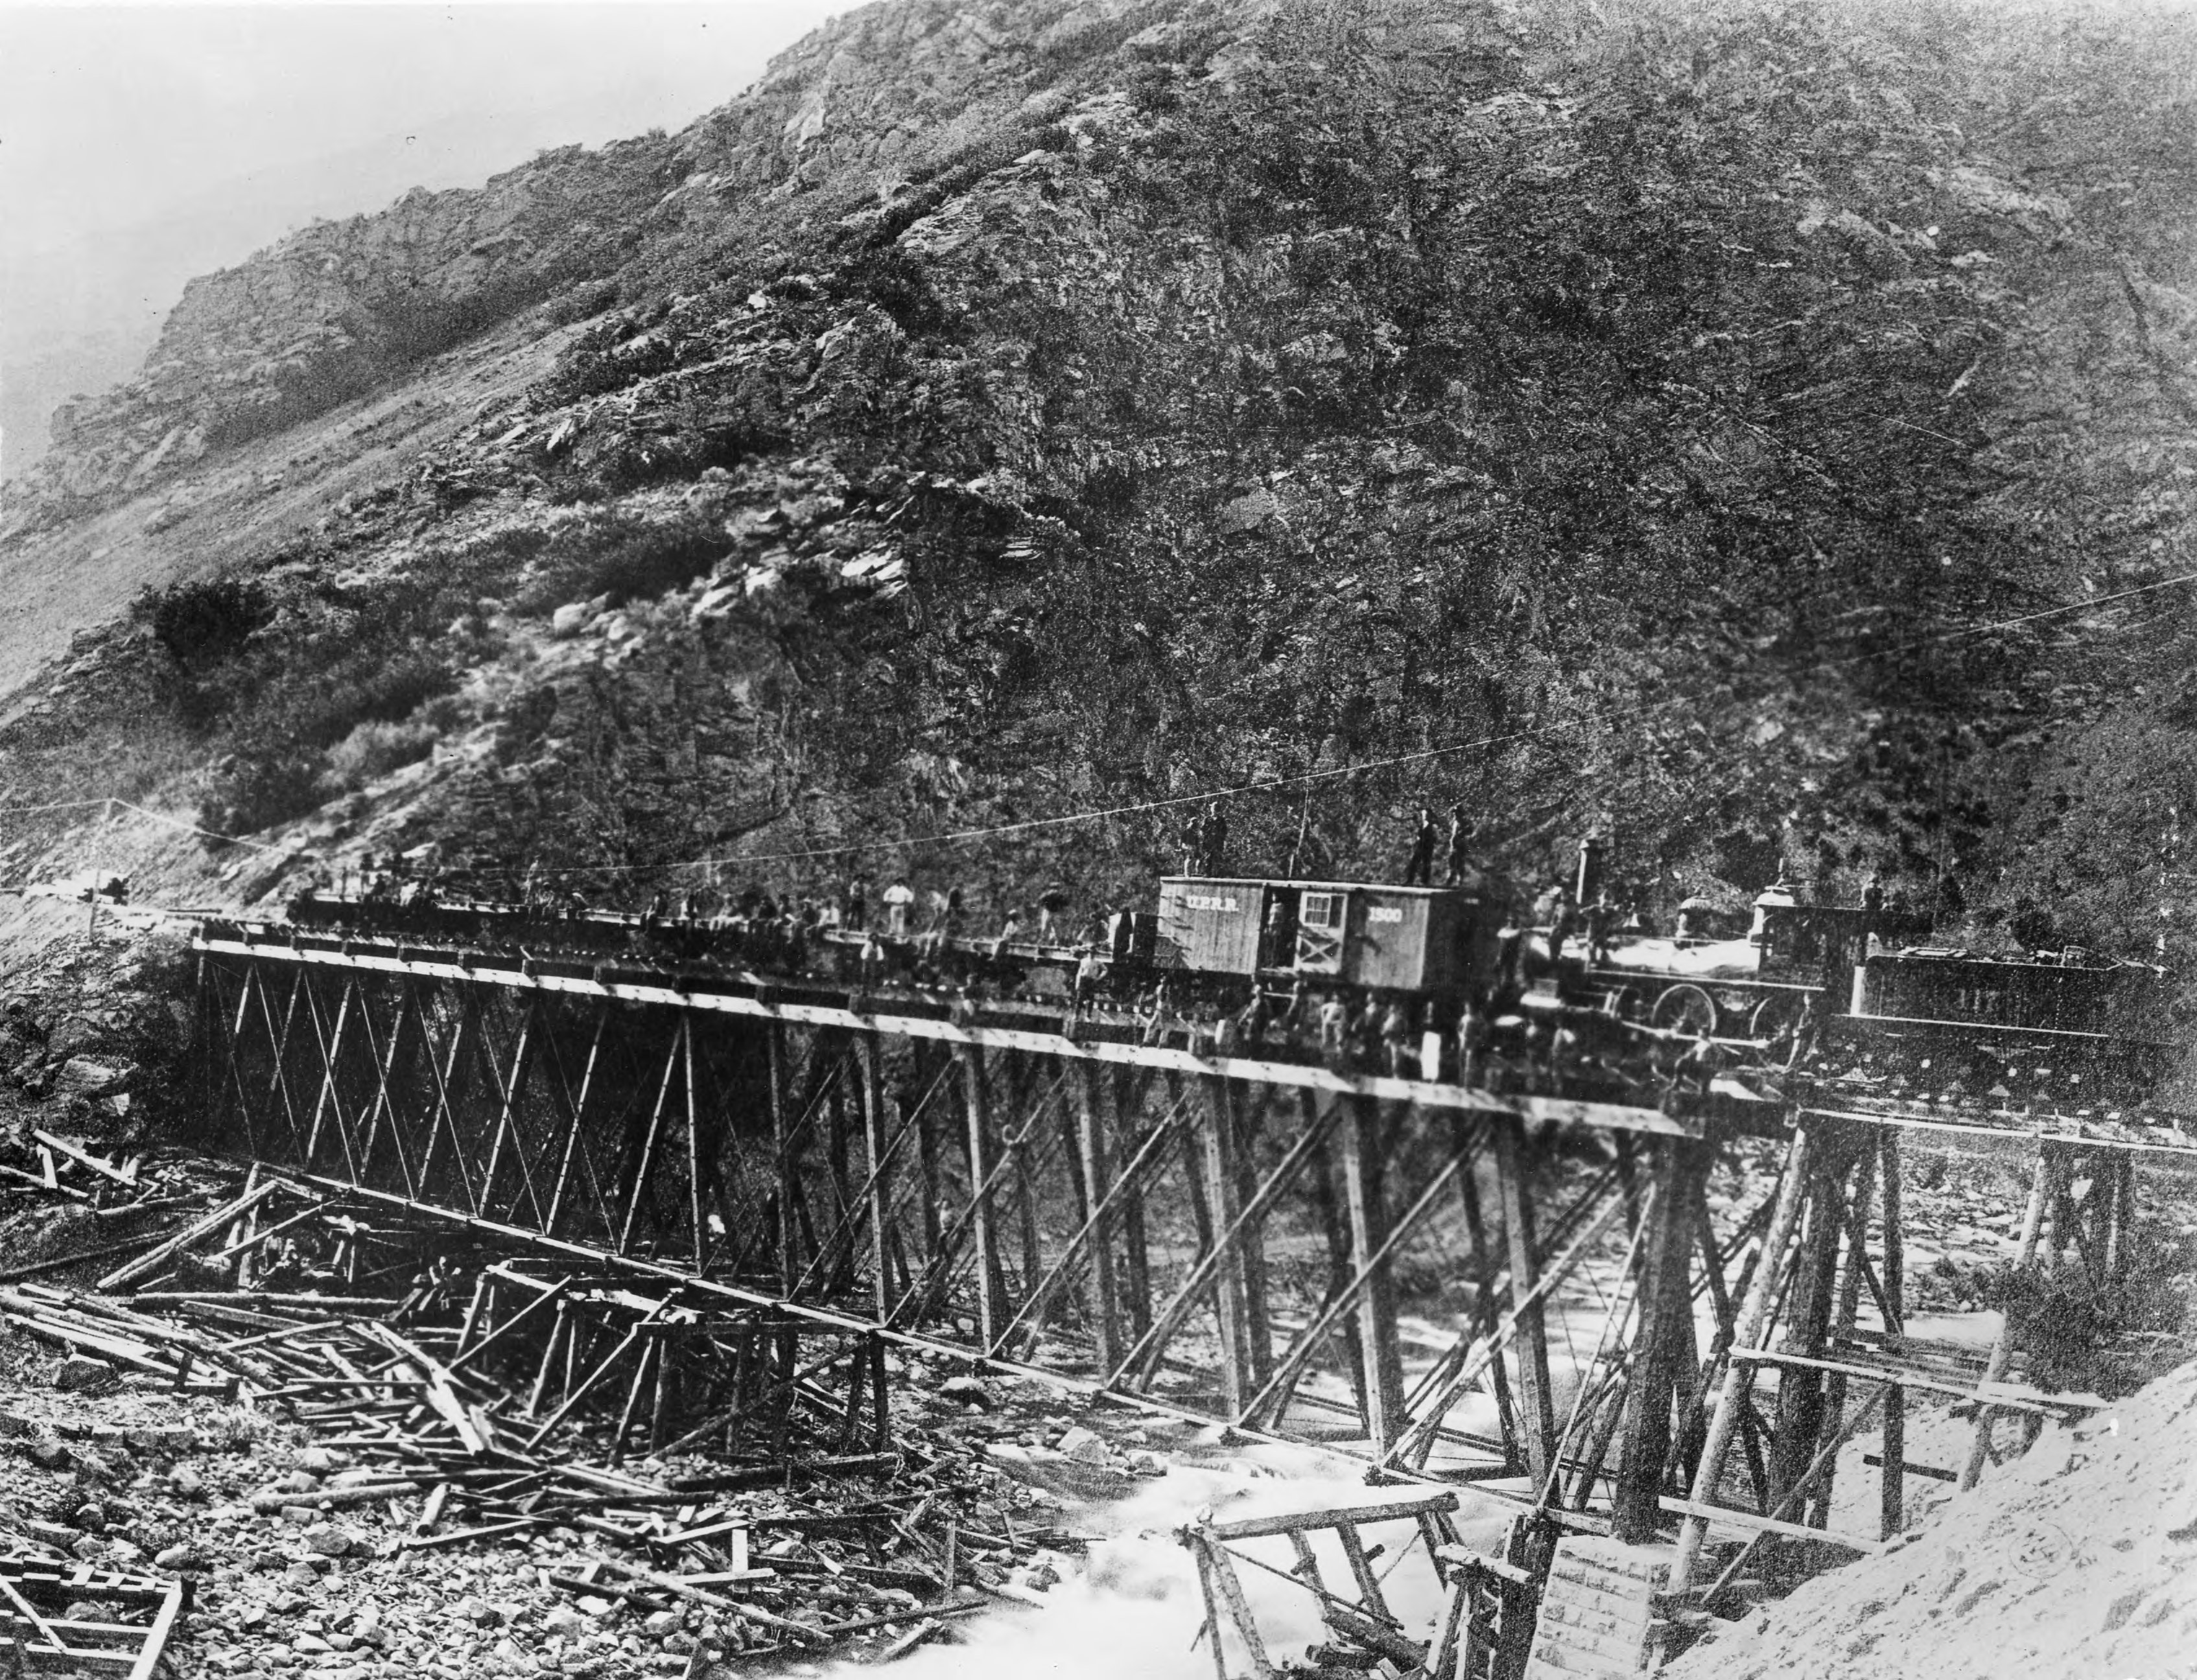 A construction train sits on Devil's Gate bridge in Utah during the building of the Union Pacific Railroad.